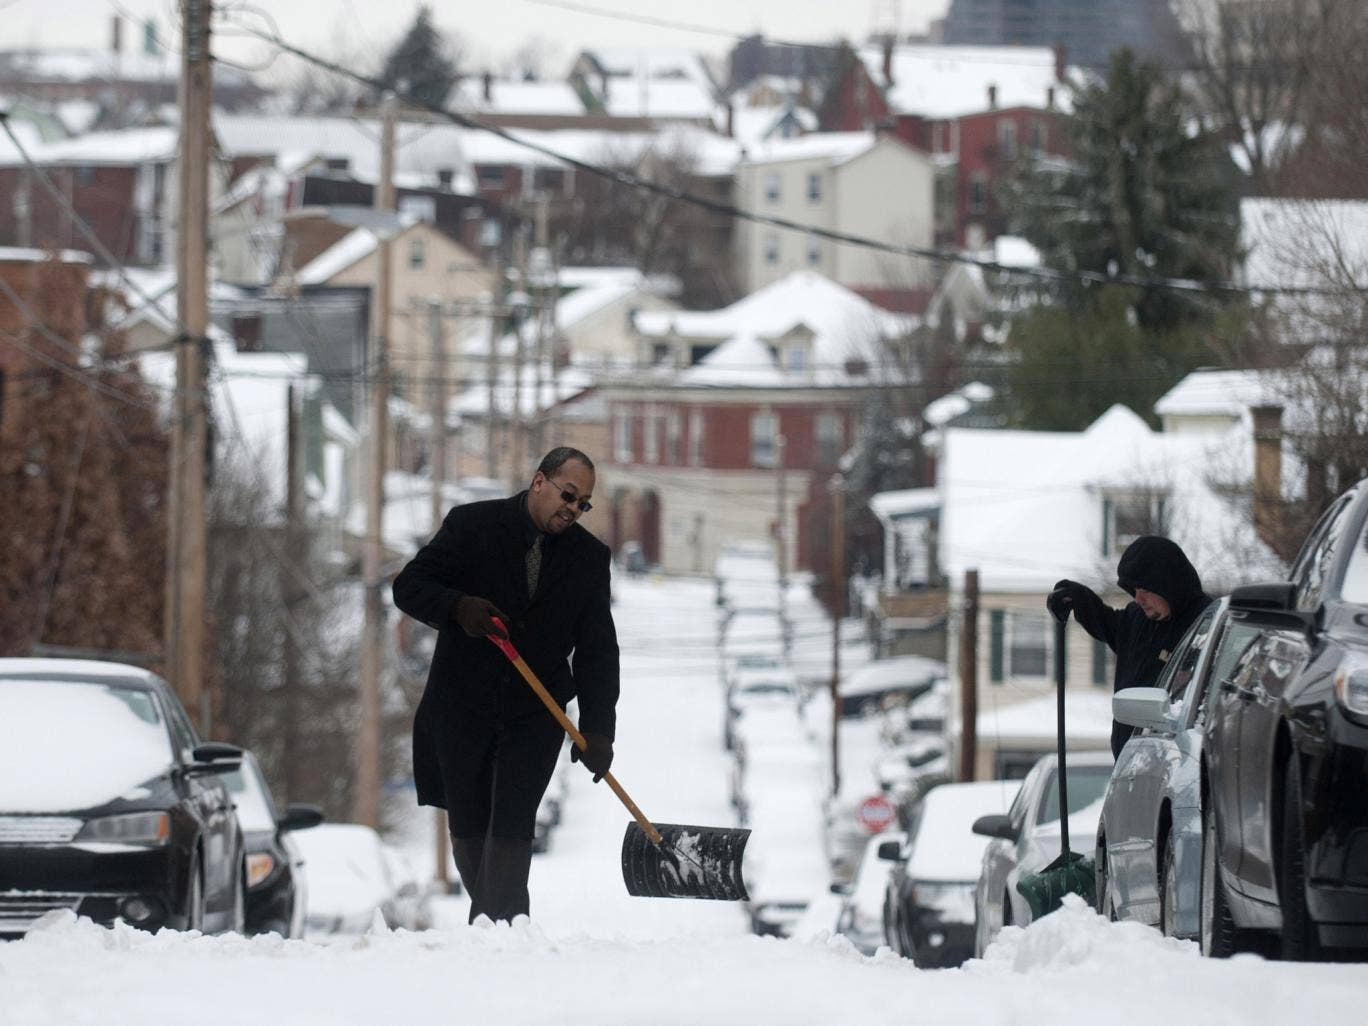 The National Weather Service says the heaviest accumulations will be in northern Pennsylvania, upstate New York and inland sections of several New England states